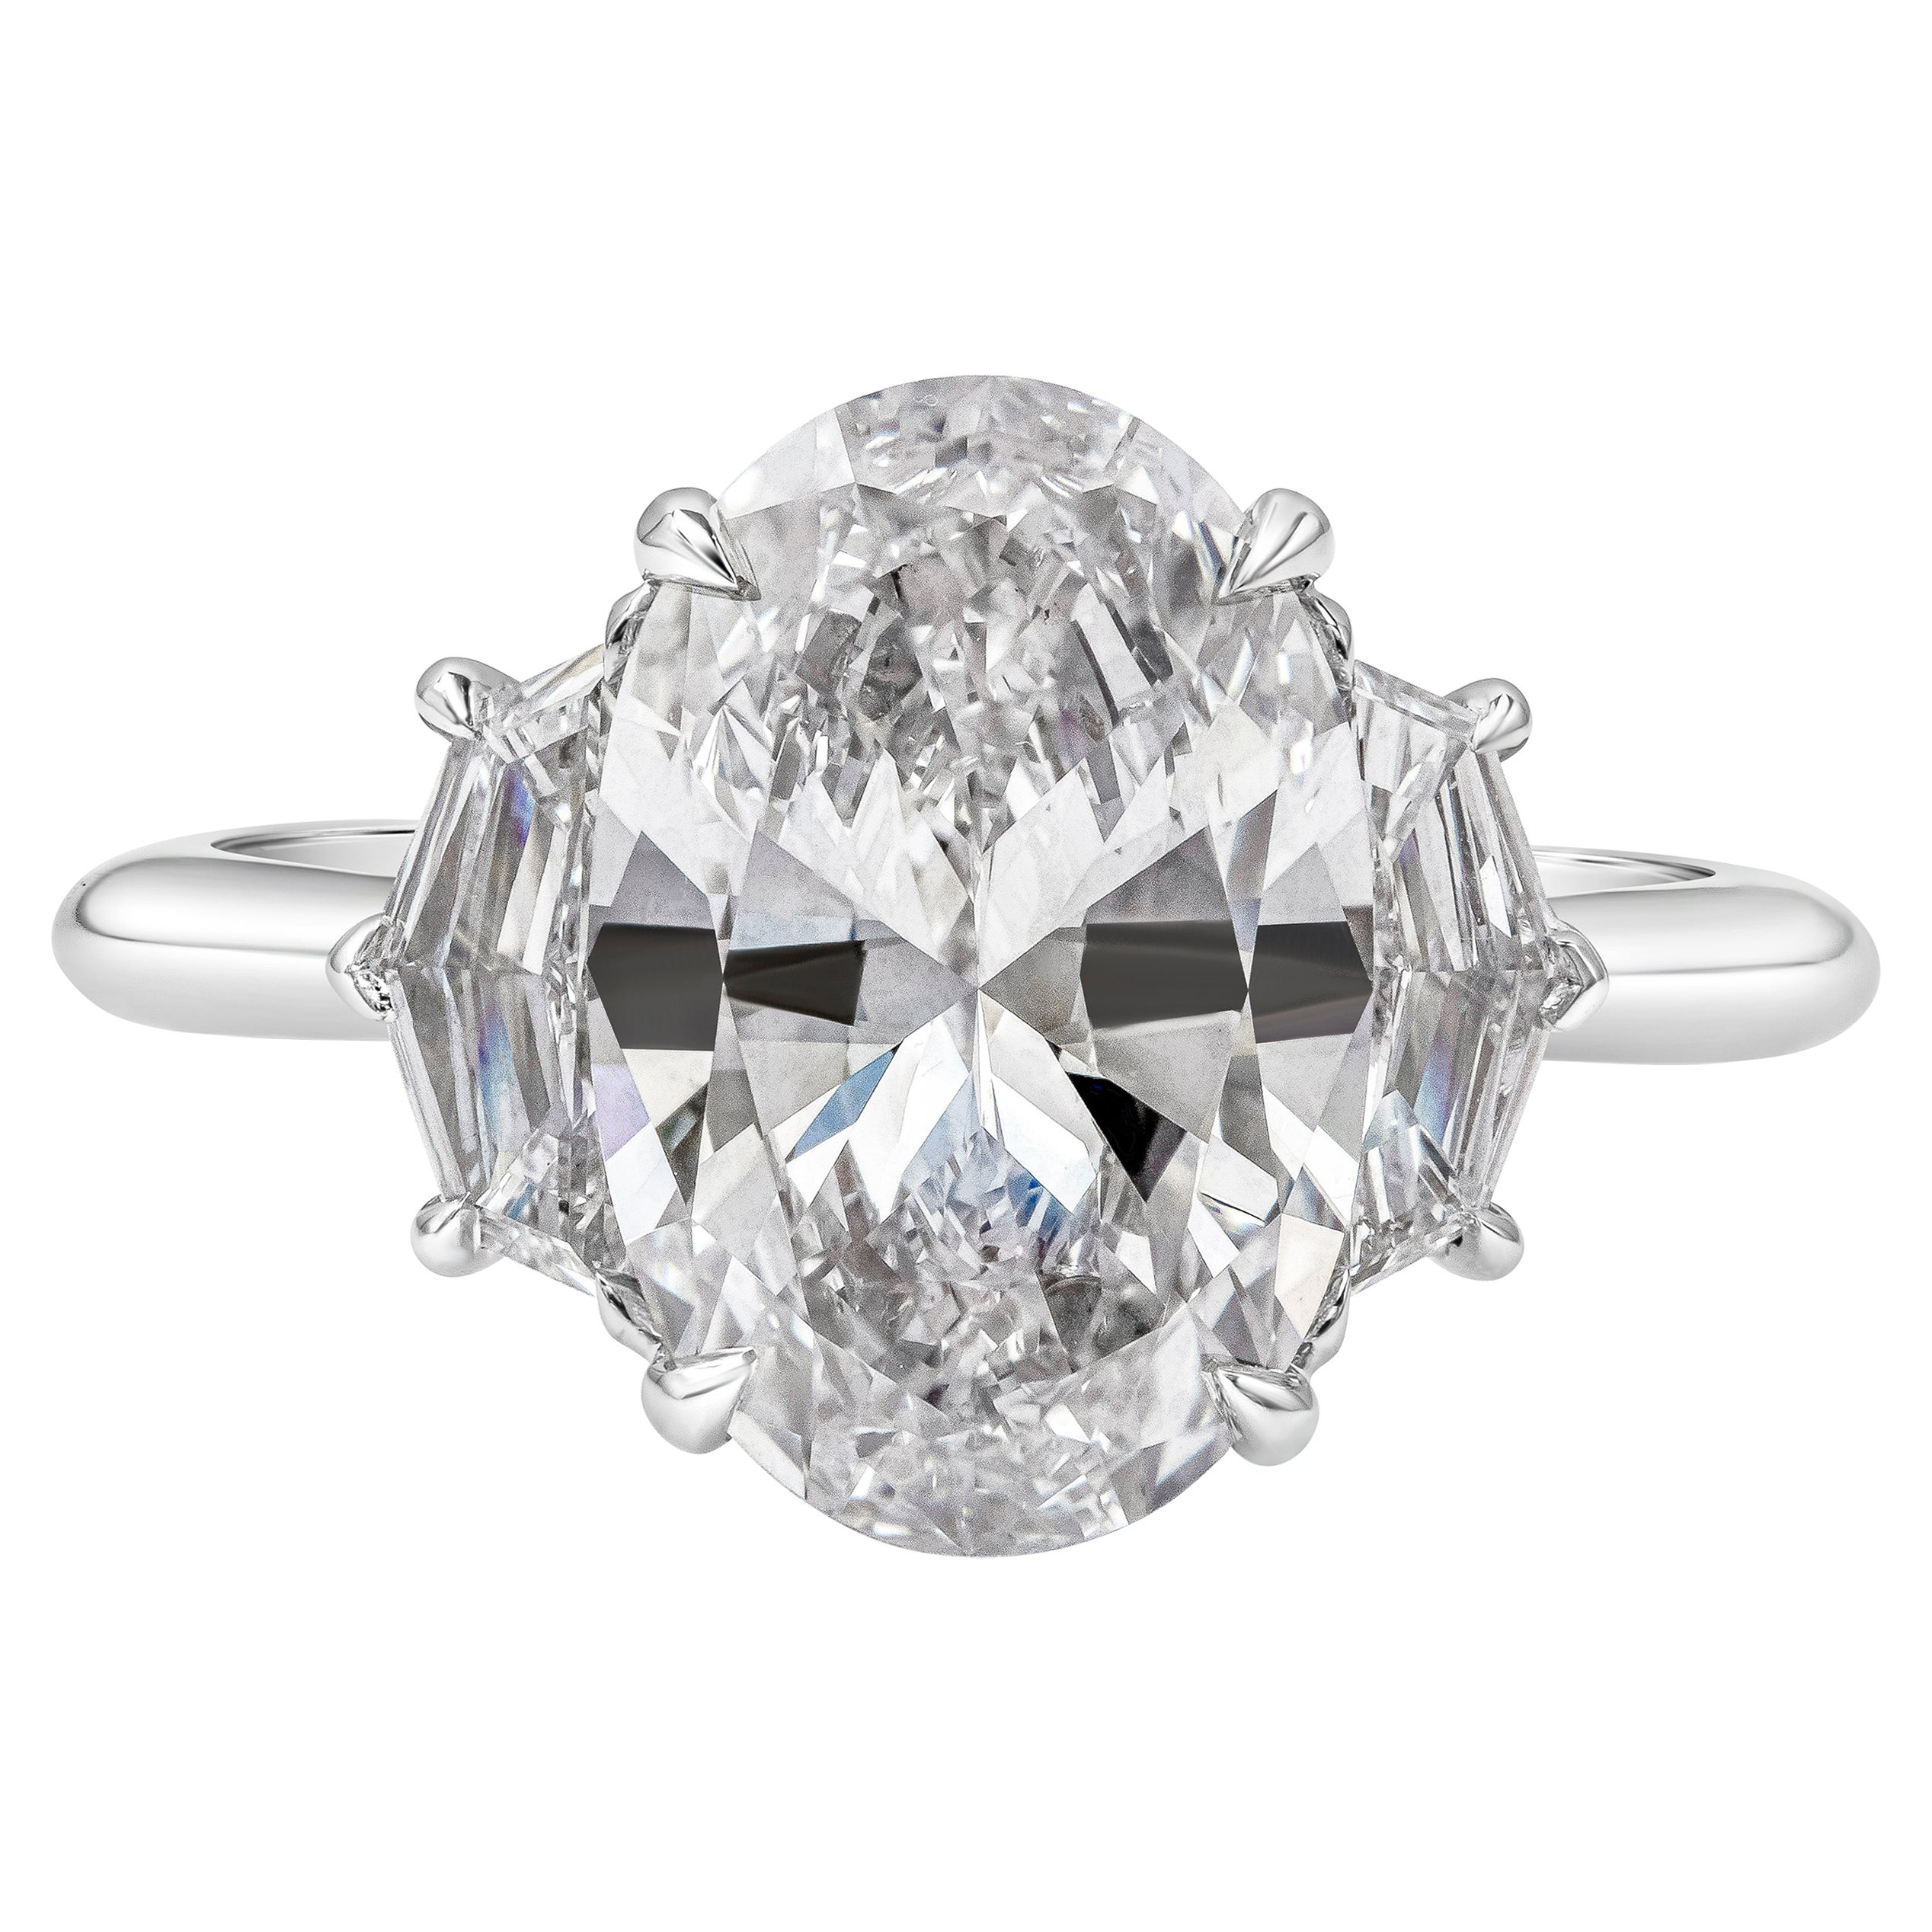 GIA Certified 4.02 Carat Oval Cut Diamond Three-Stone Engagement Ring